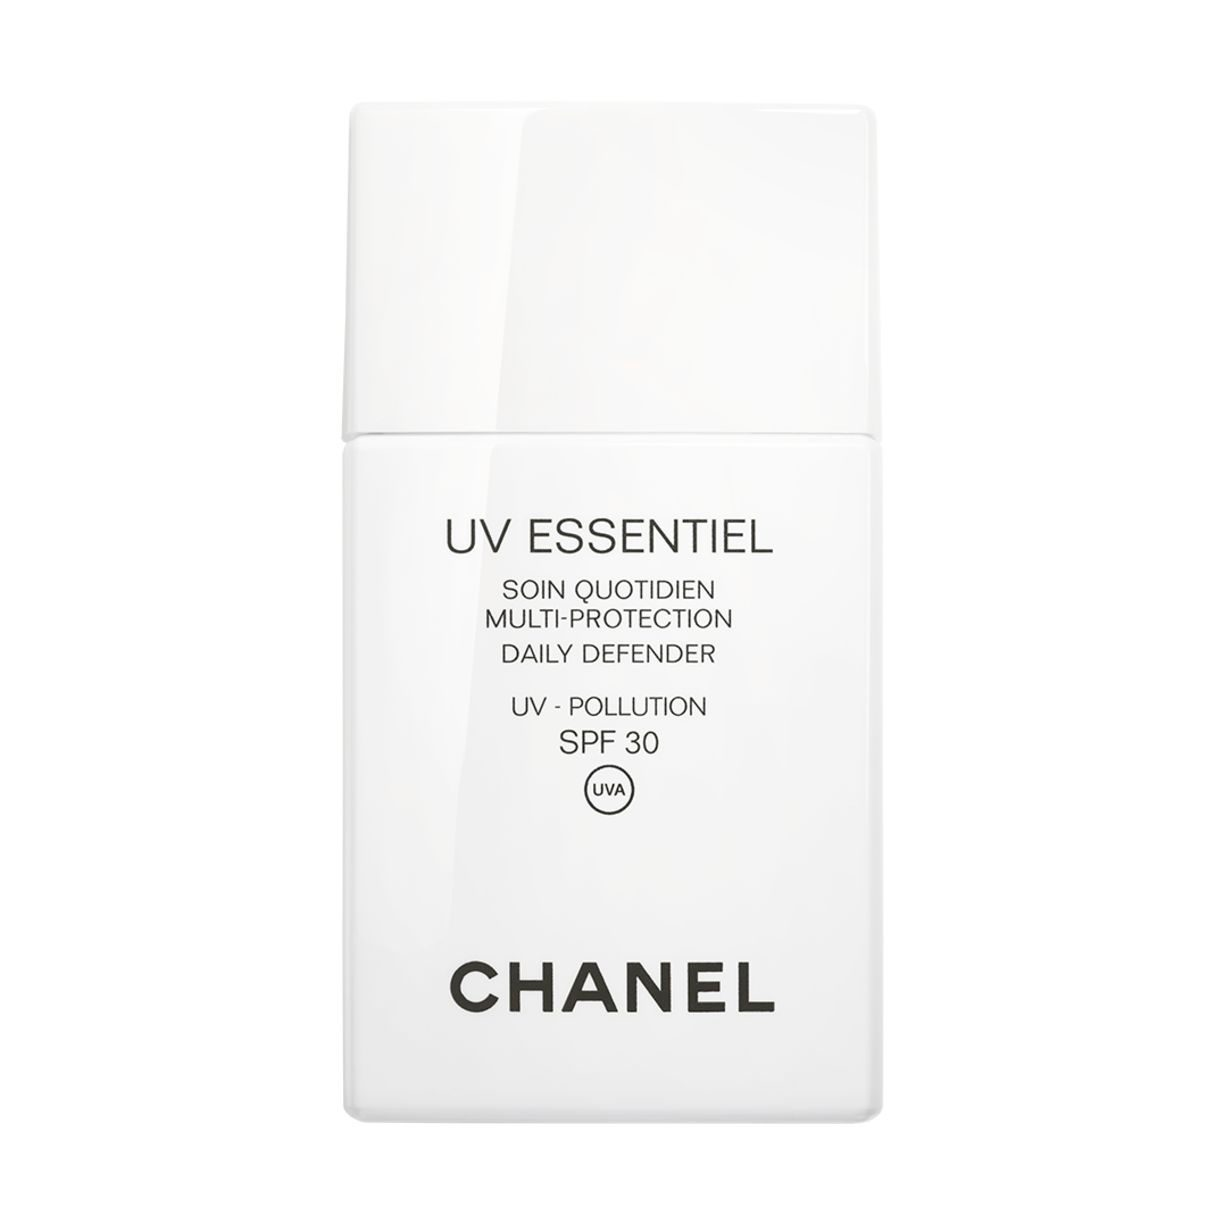 UV ESSENTIEL MULTI-PROTECTION DAILY DEFENDER UV - POLLUTION SPF 30